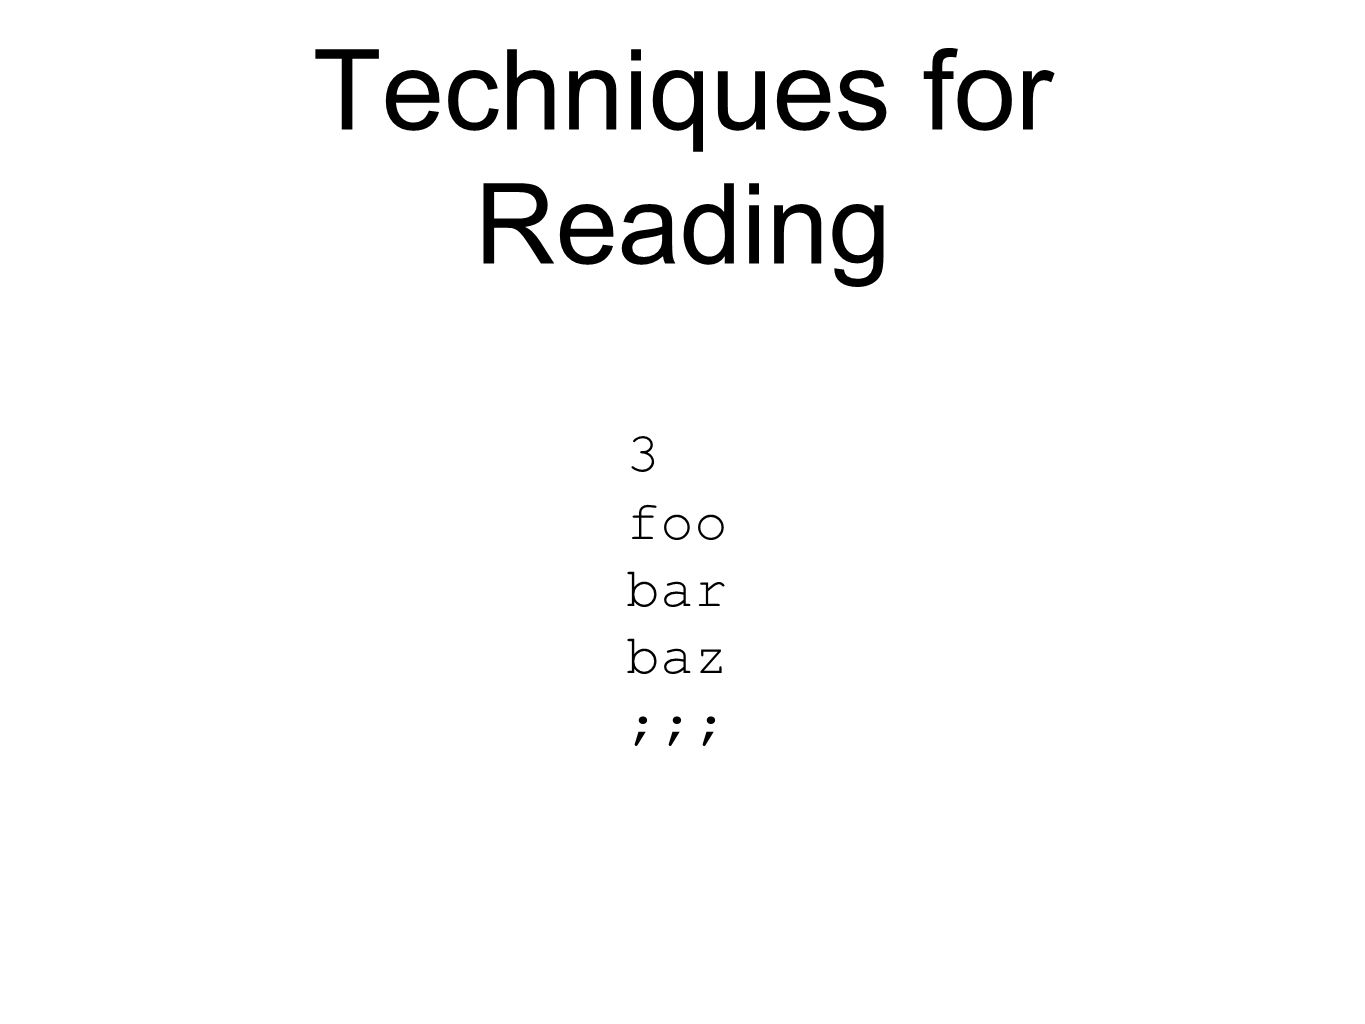 Techniques for Reading 3 foo bar baz ;;;